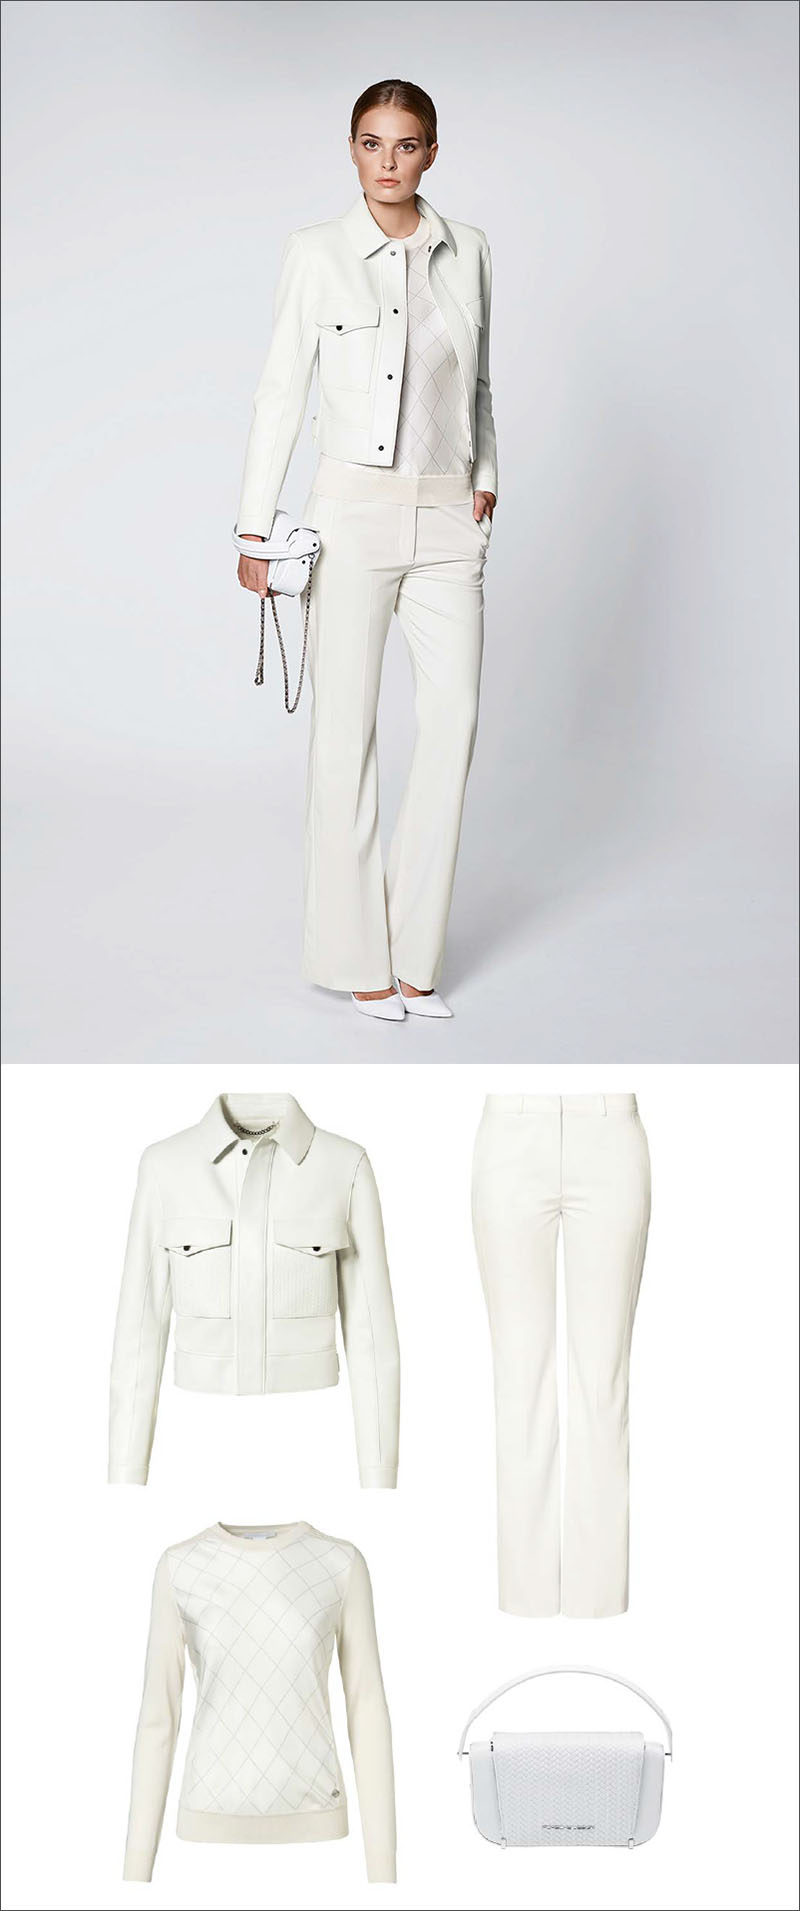 Women's Fashion Ideas - 12 Womens Outfits From Porsche Design's 2017 Spring/Summer Collection // This all white women's outfit features a white leather jacket, a knit sweater, flared white pants, and a simple white purse.